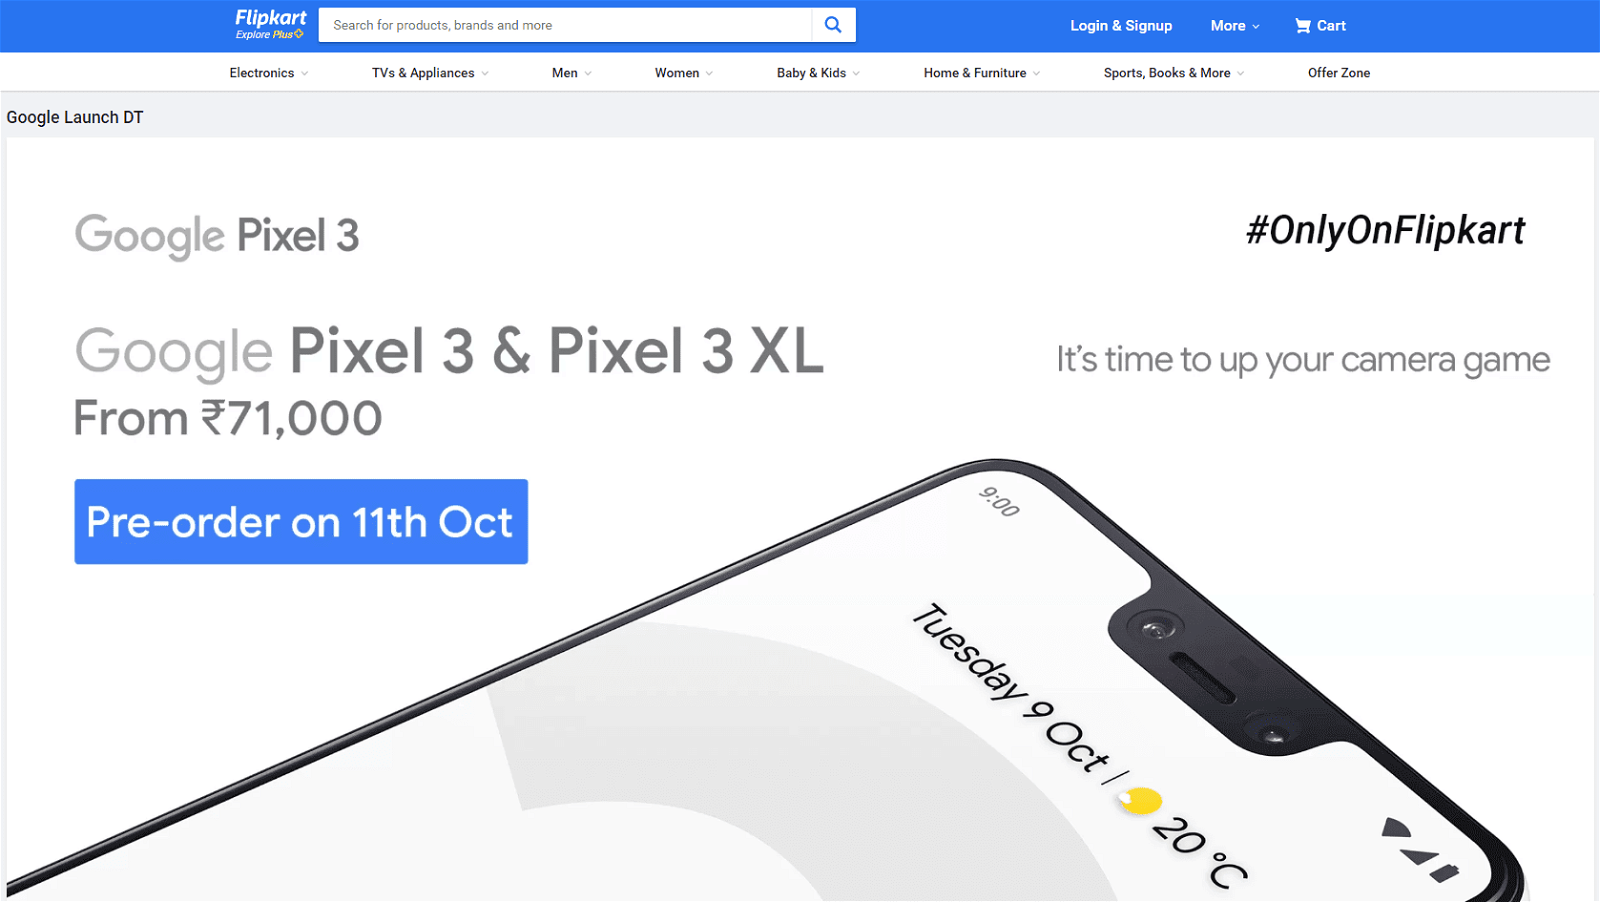 Where to Buy Google Pixel 3 and Pixel 3 XL in India 3